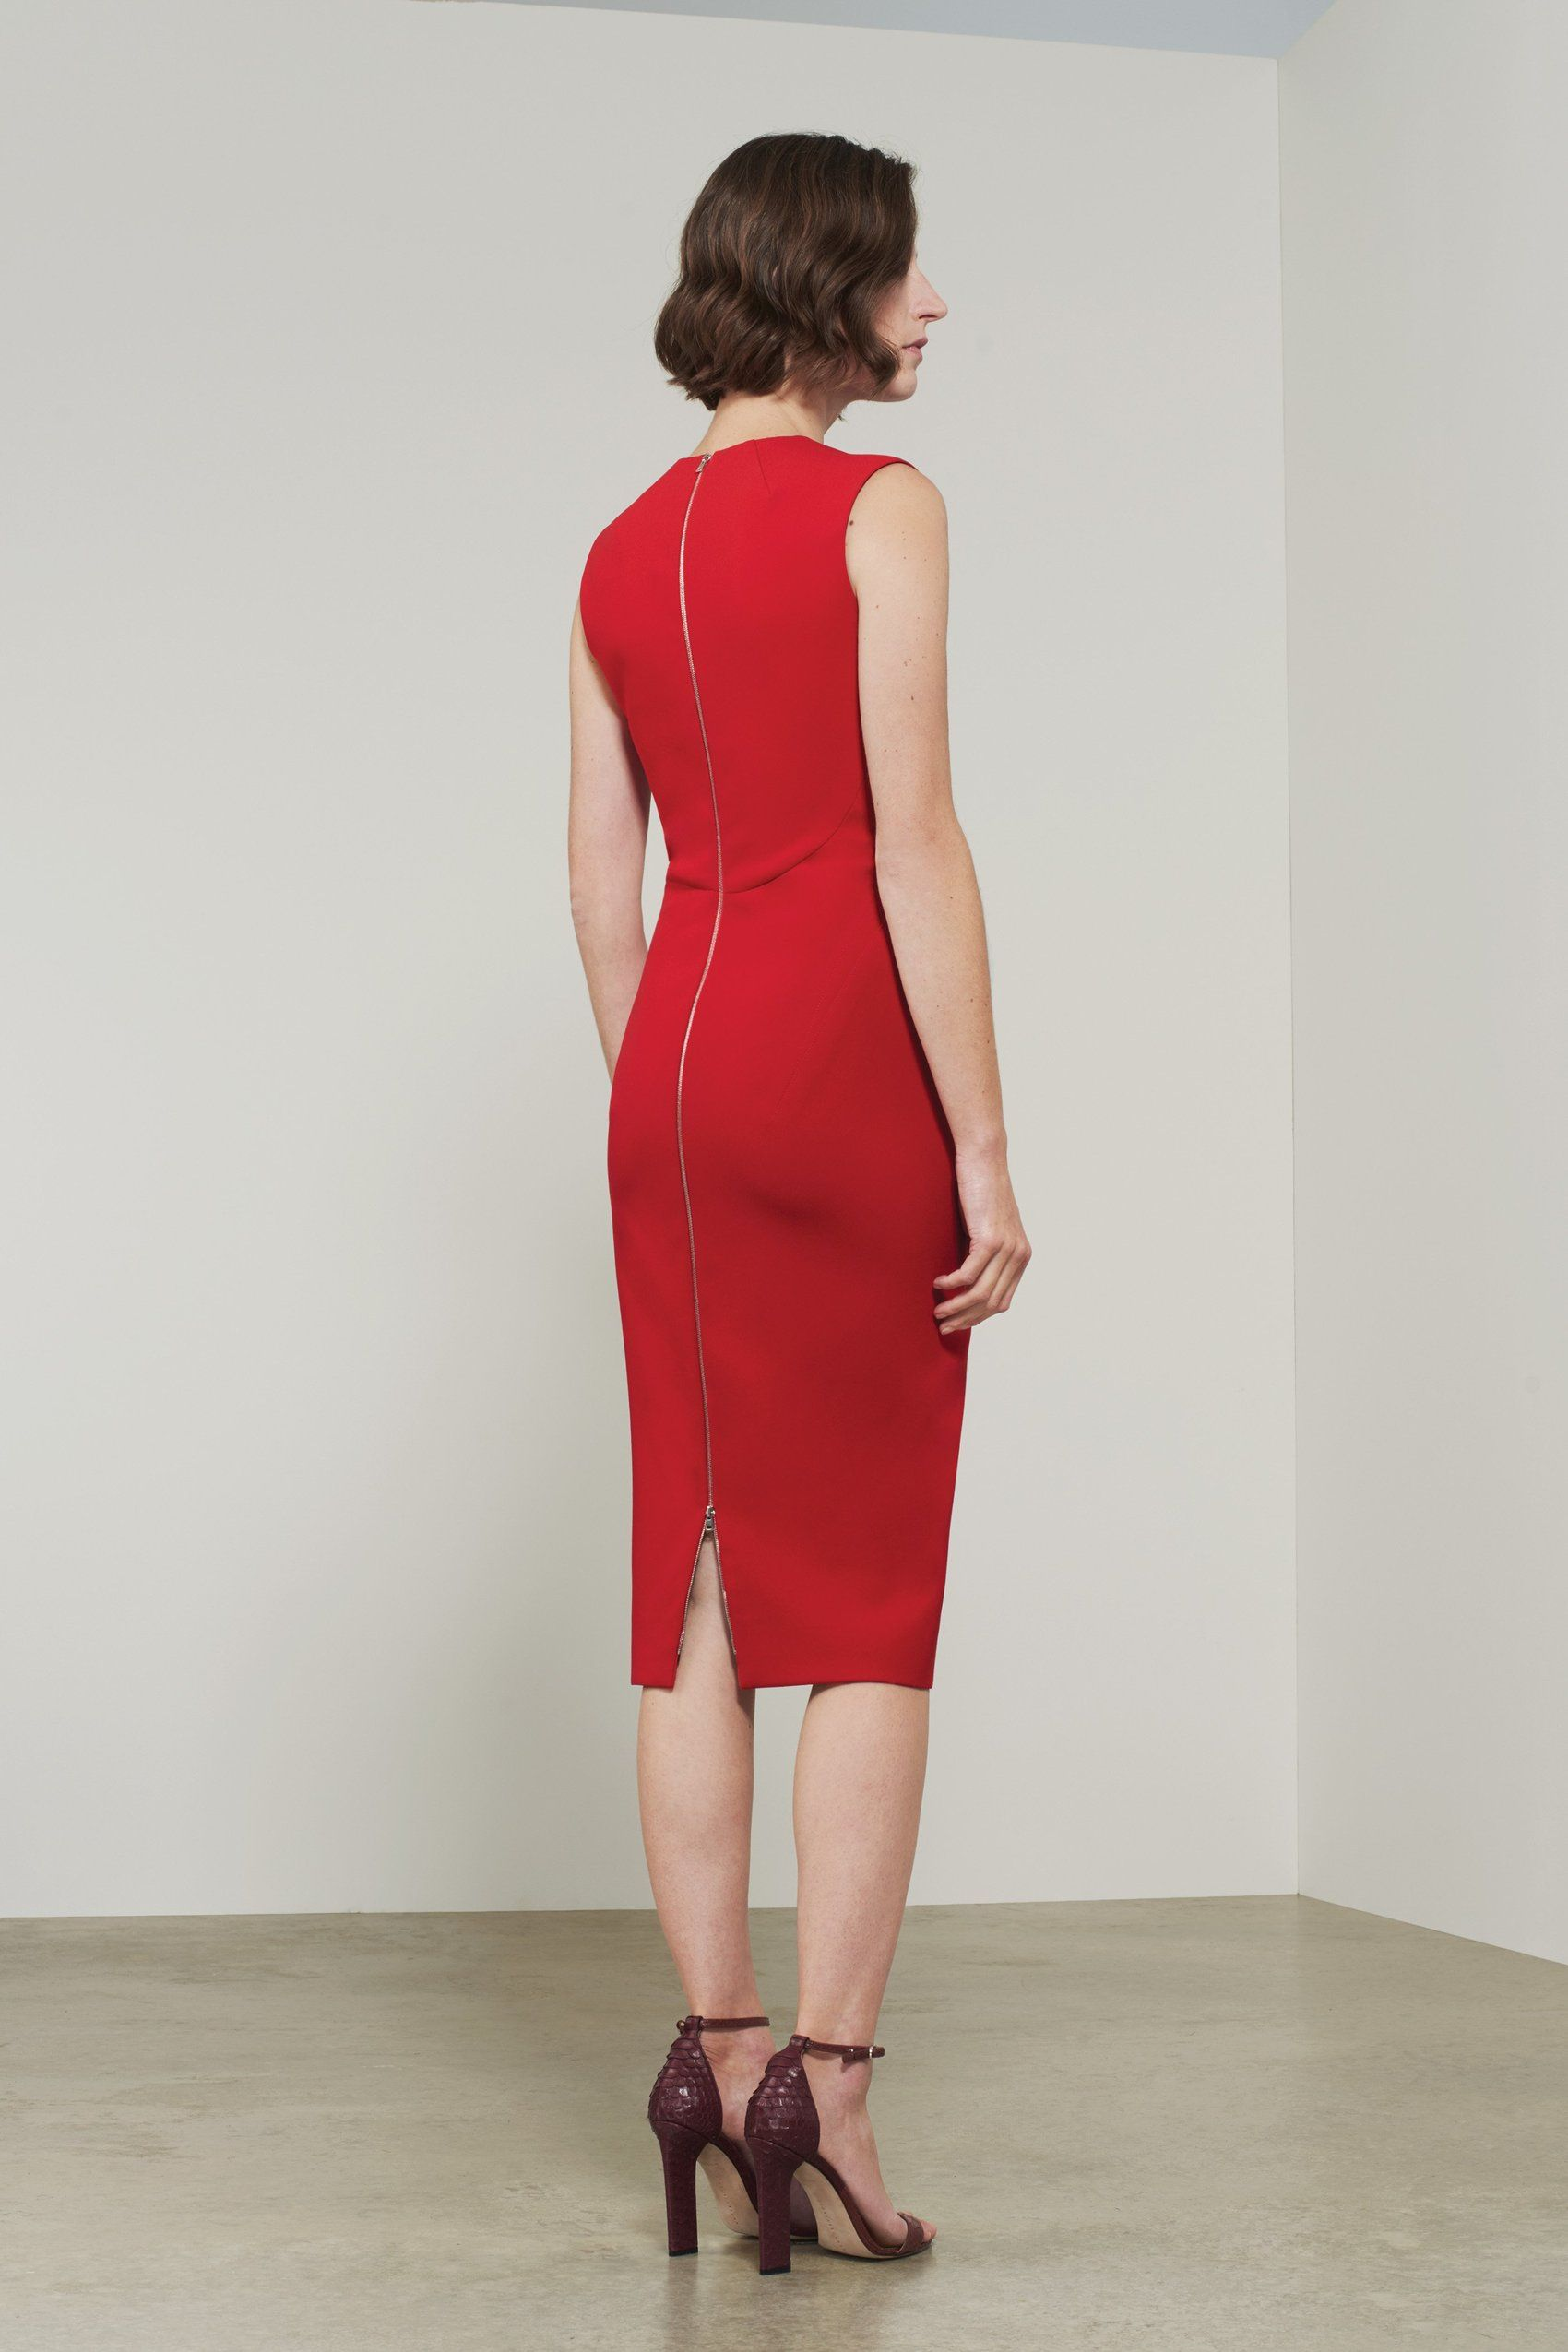 Sleeveless V Neck Fitted Victoria Beckham Red Sleeveless Dress Fitted Knee Length Dress Shopping Womens Dresses [ 2550 x 1700 Pixel ]